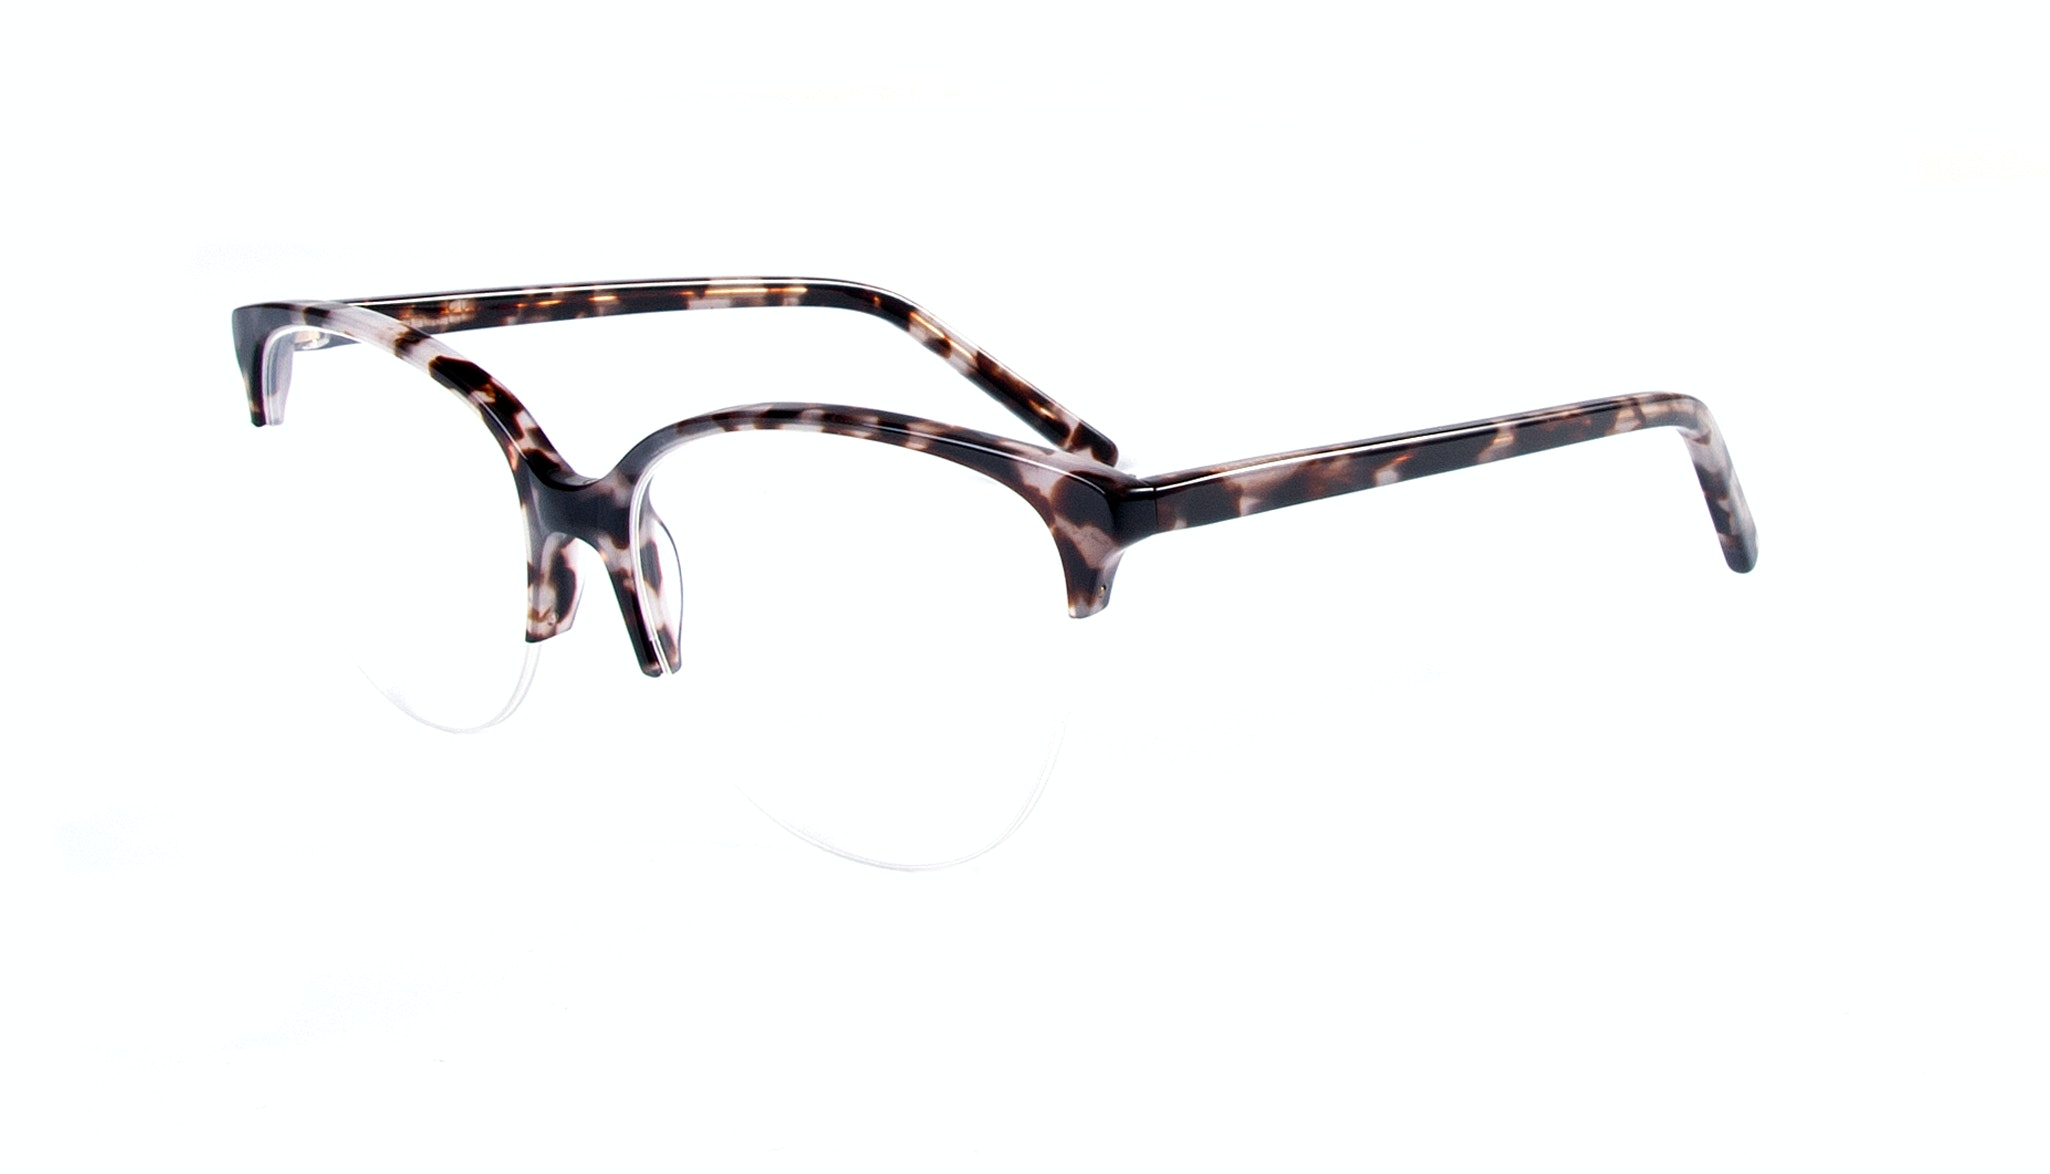 Affordable Fashion Glasses Cat Eye Round Semi-Rimless Eyeglasses Women Imagine Light Mocha Tortoise Tilt